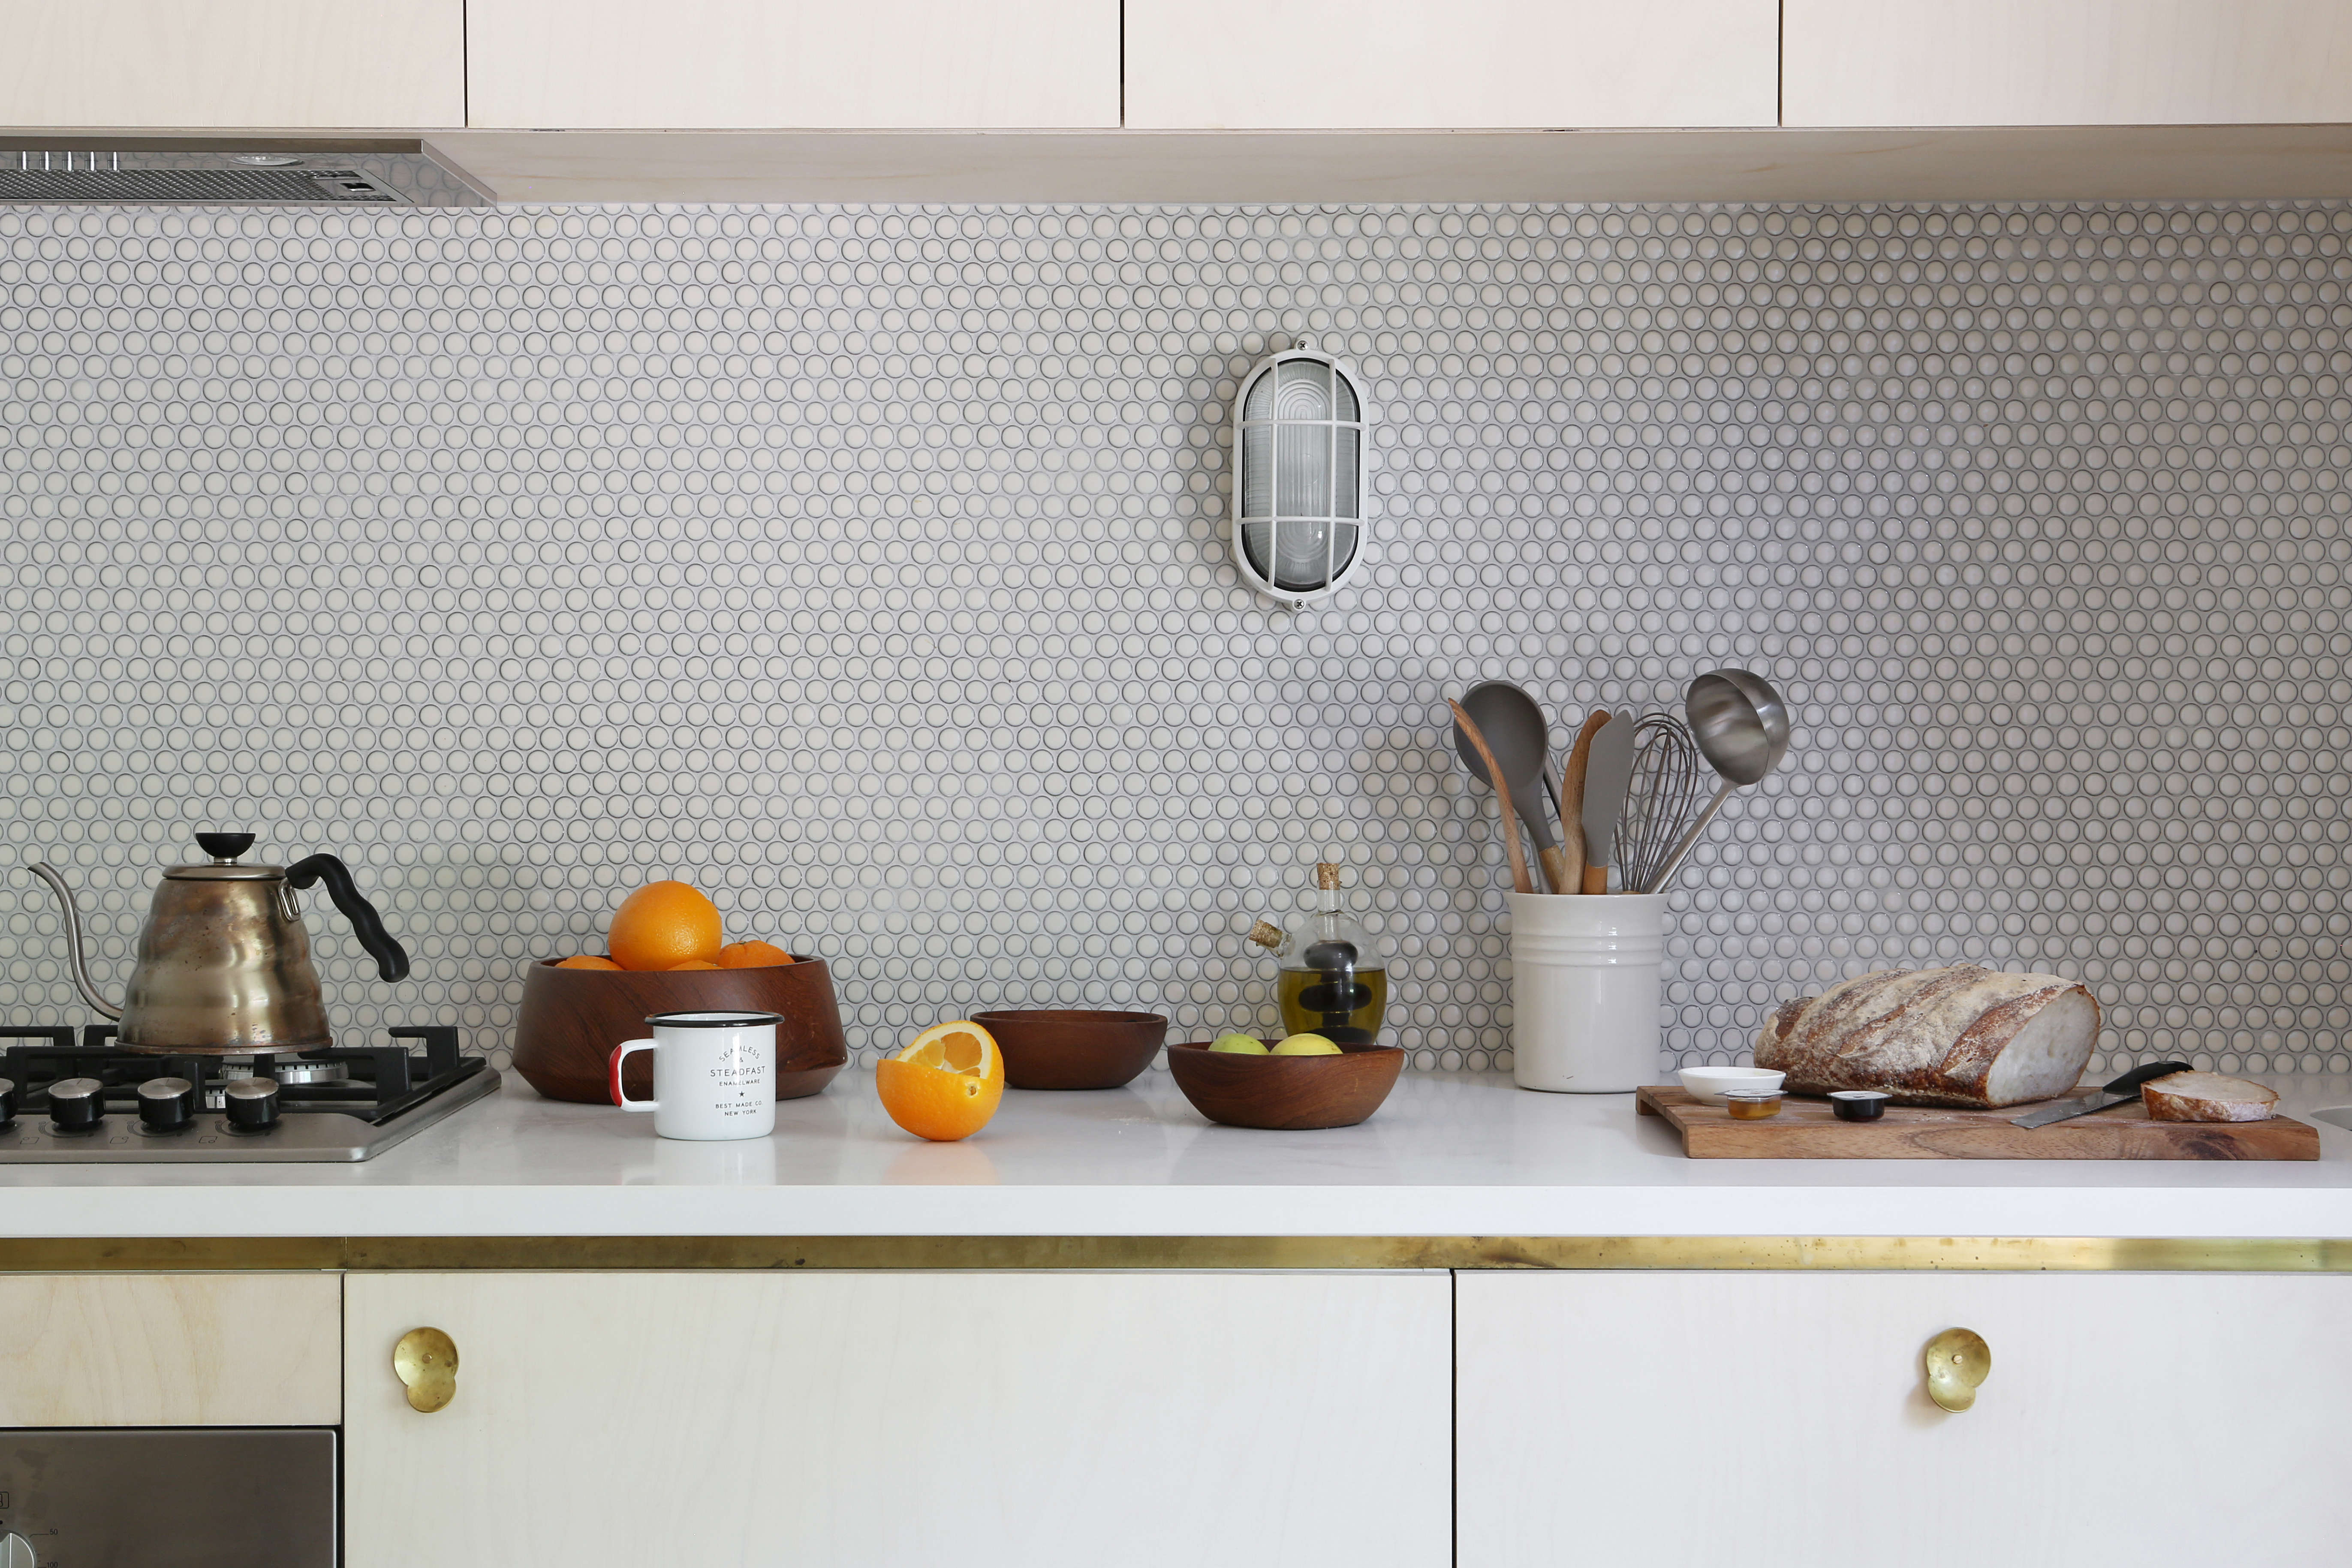 The white tiled kitchen at Jackie Winter Gardens, a guesthouse and artist residency outside Melbourne, Australia, designed by Searah Trotter of Hearth; Rhiannon Taylor photo| Remodelista